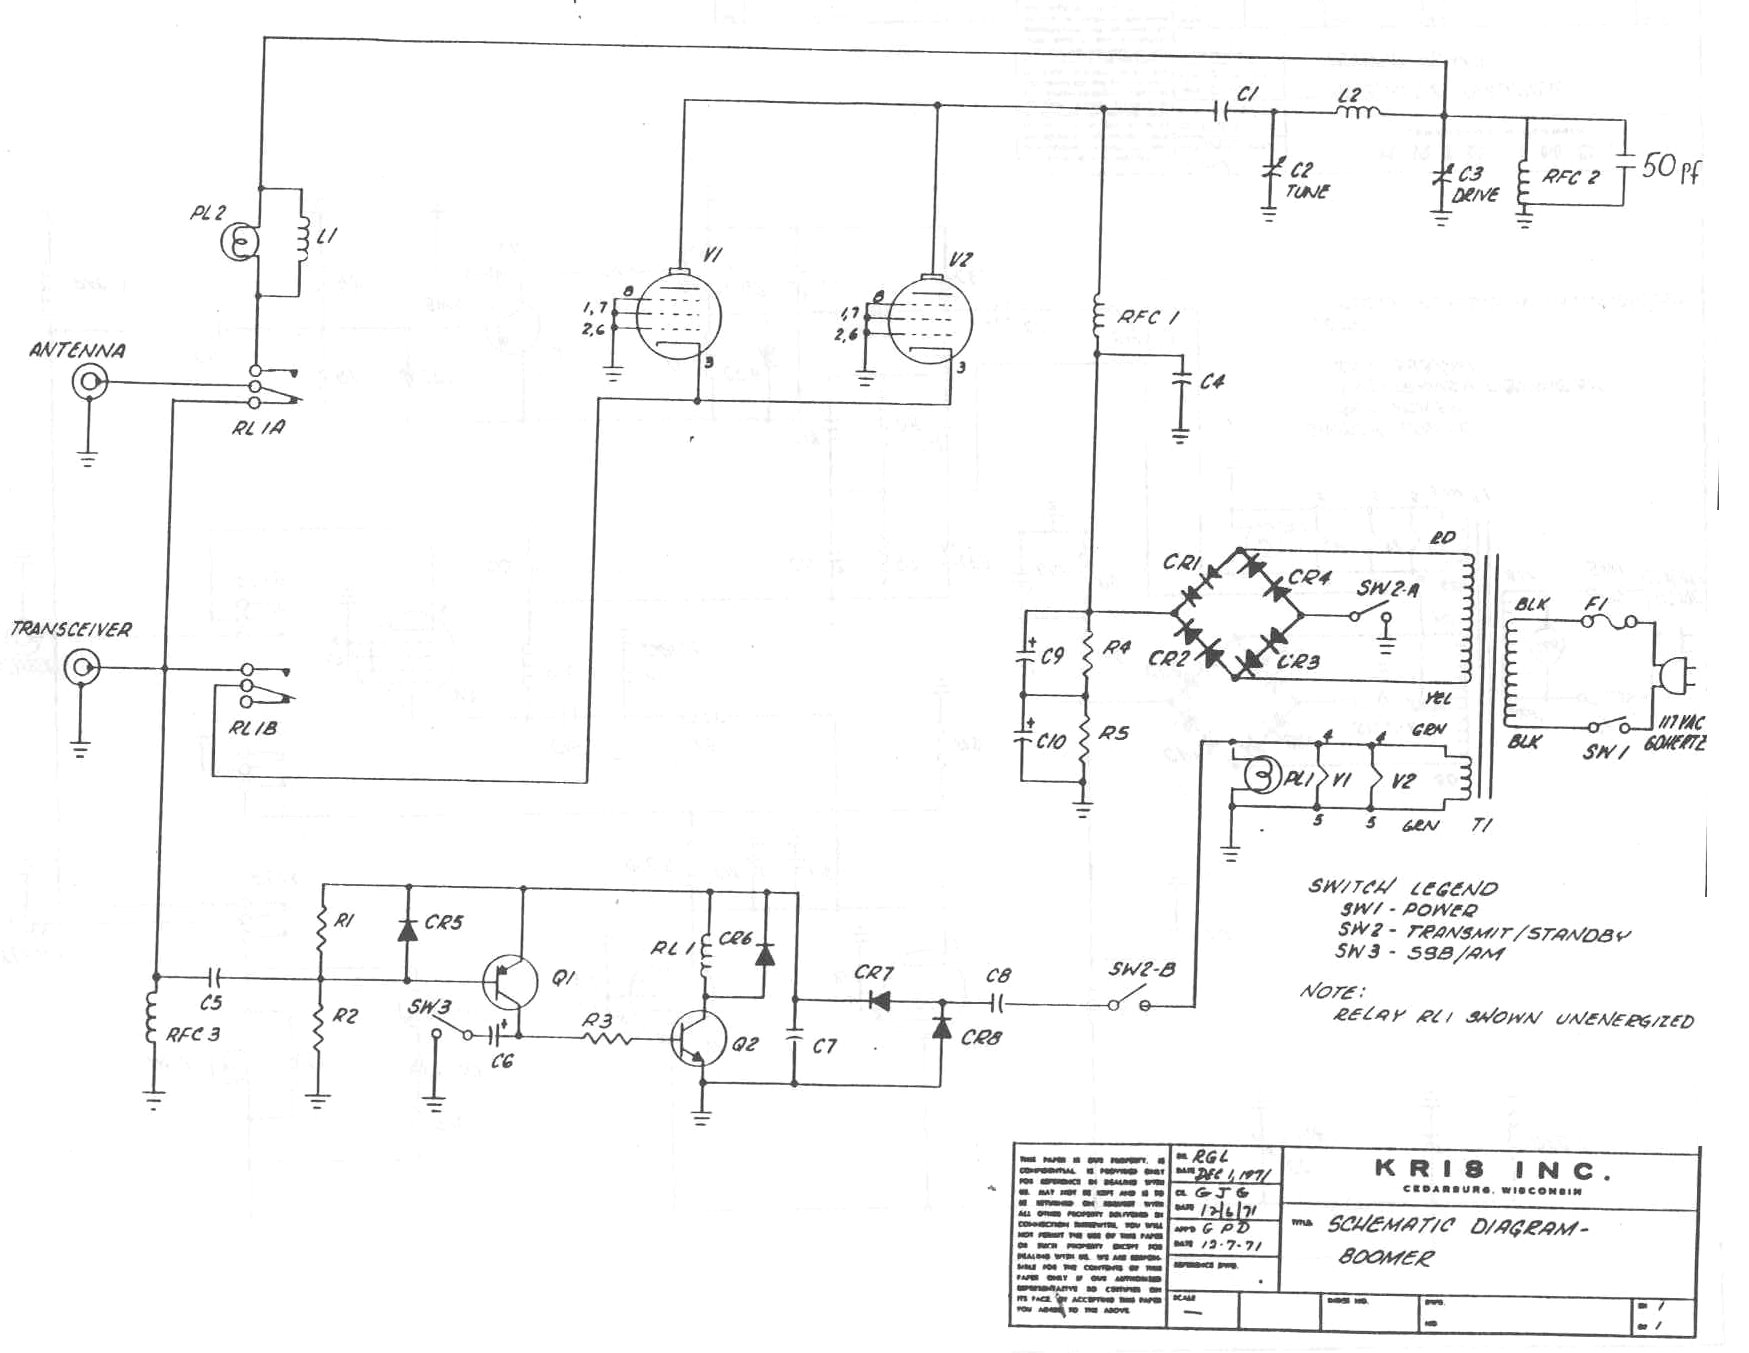 75 fxe wiring diagram hd 75 automotive wiring diagrams description kris boomer sch fxe wiring diagram hd